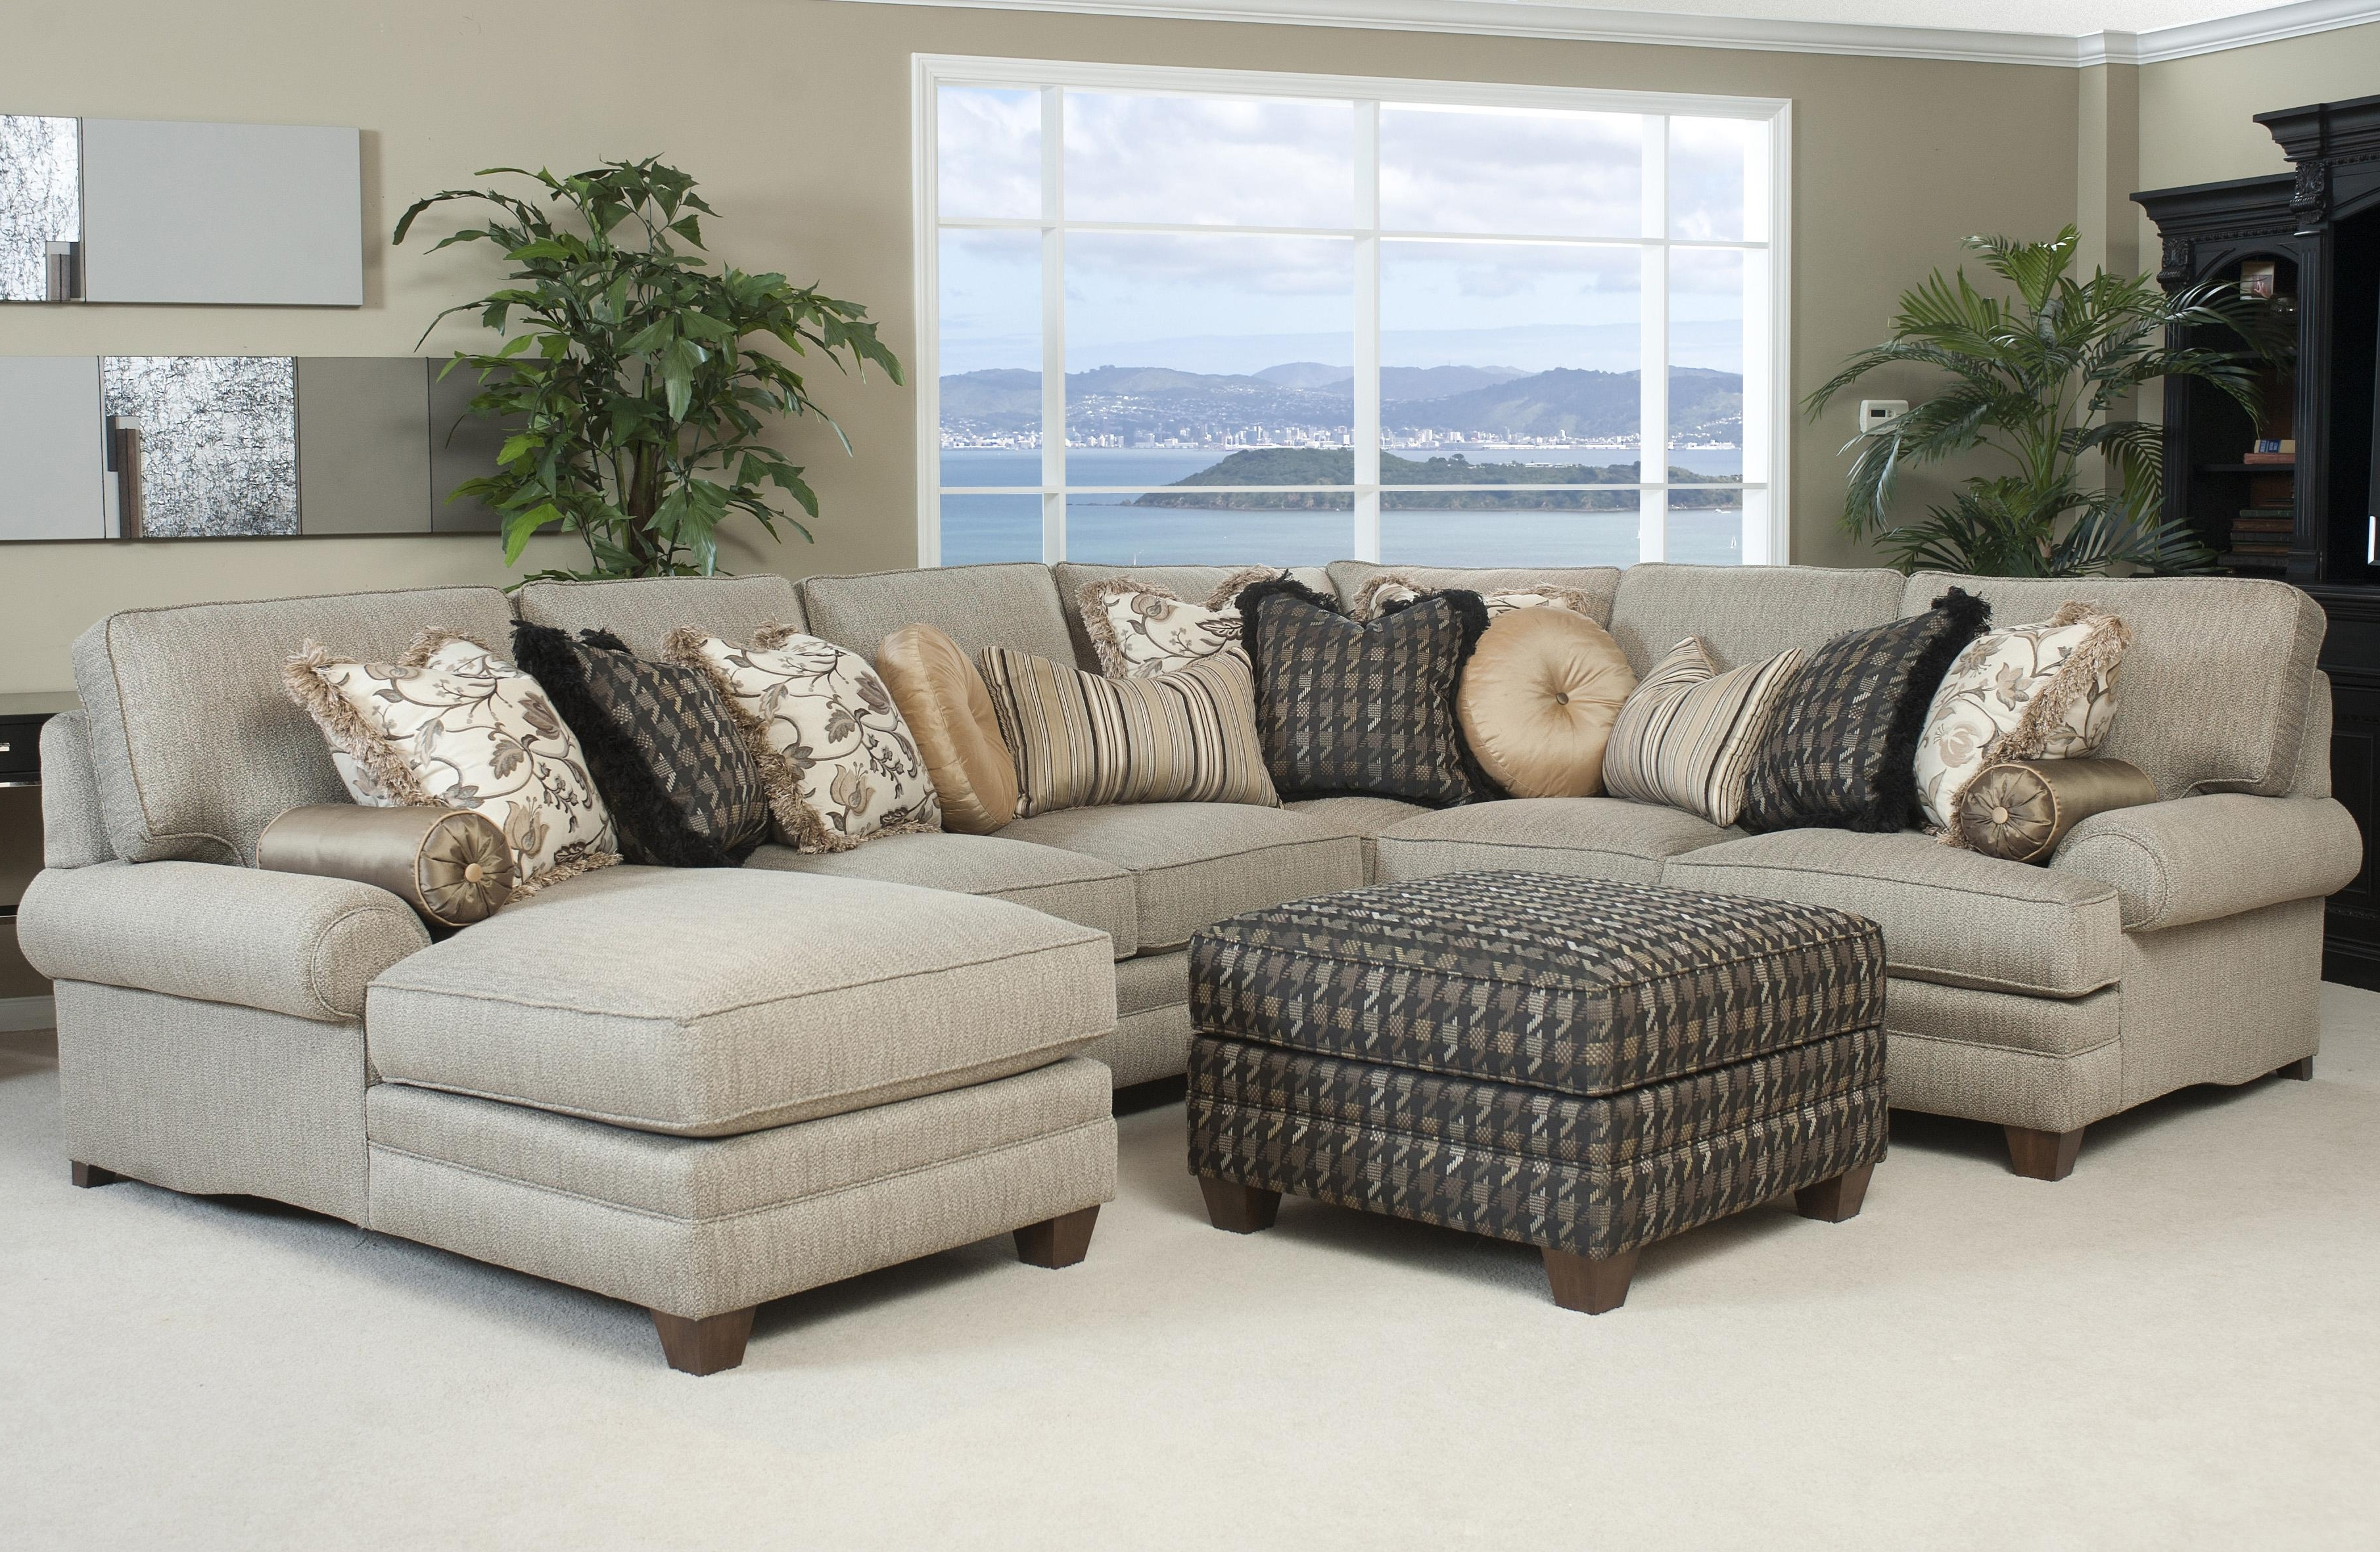 2018 Sectional Sofas With Chaise In Best Traditional Sectional Sofas With Chaise Contemporary (View 2 of 20)